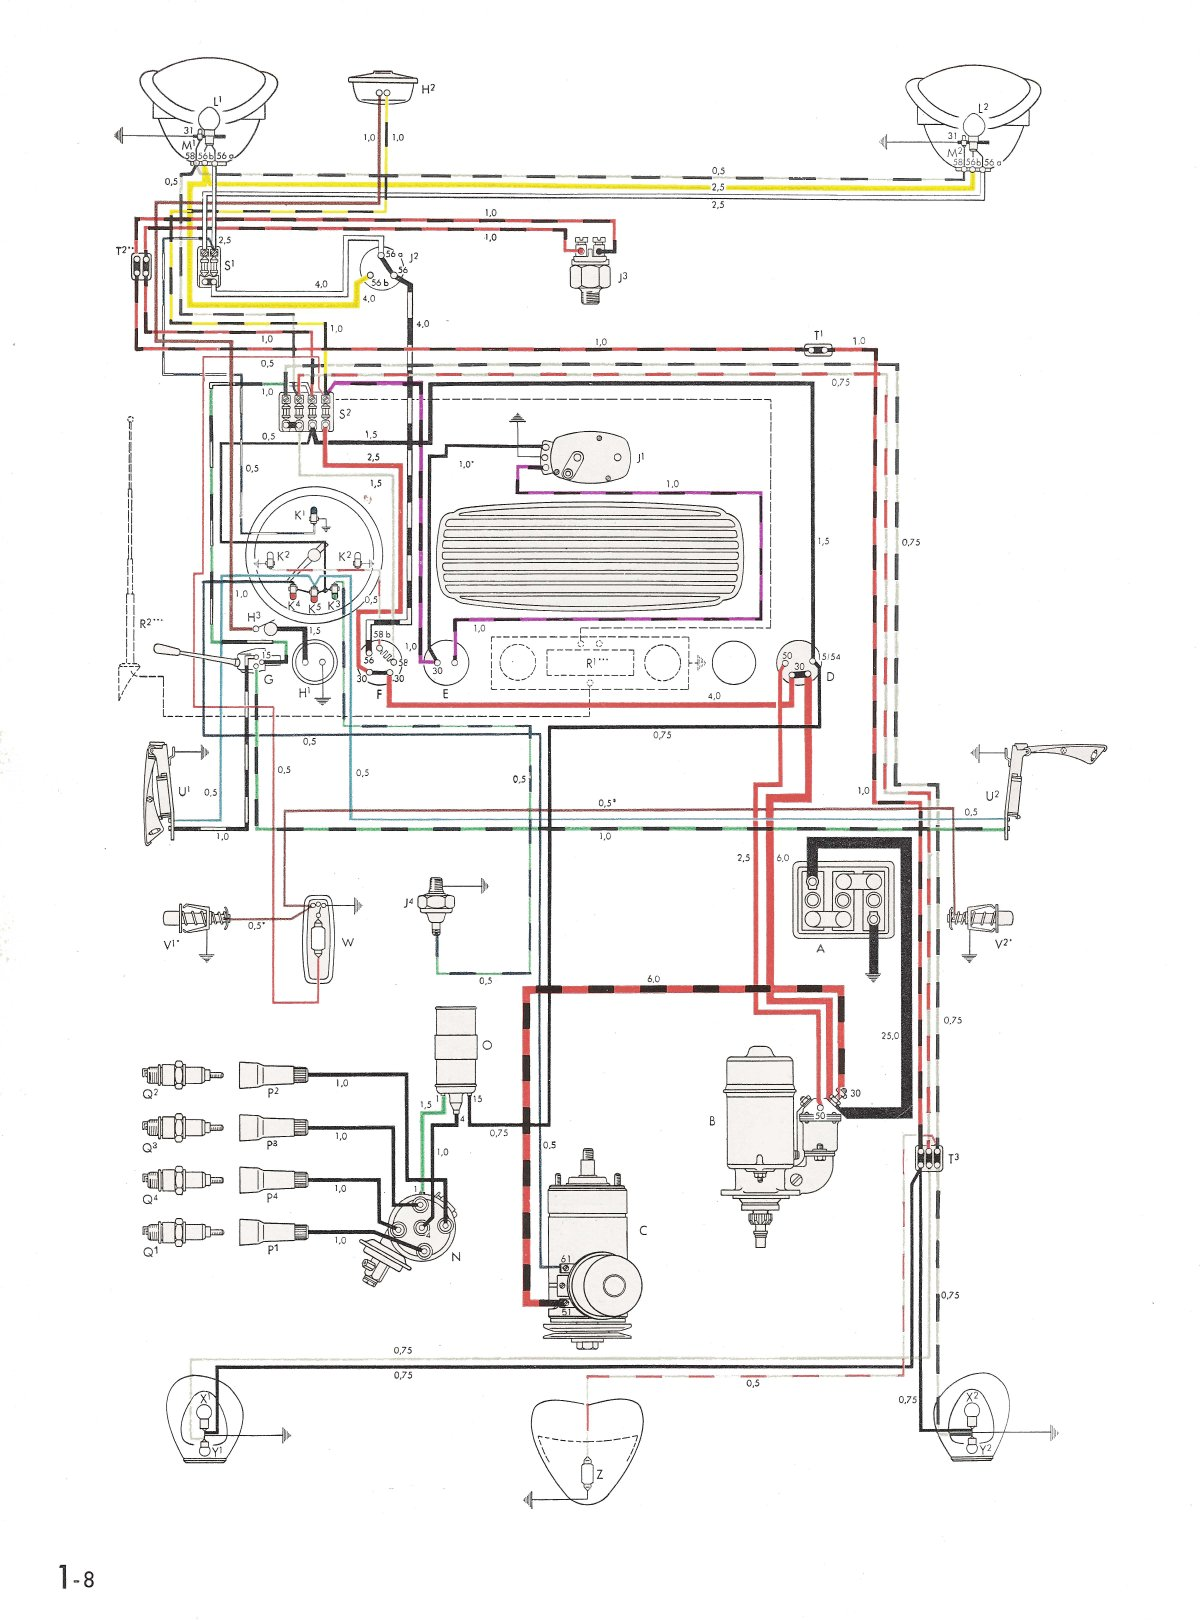 73 Vw Alternator Wiring Data Diagram Hitachi As Well Electrical Thesamba Com Type 1 Diagrams Guide